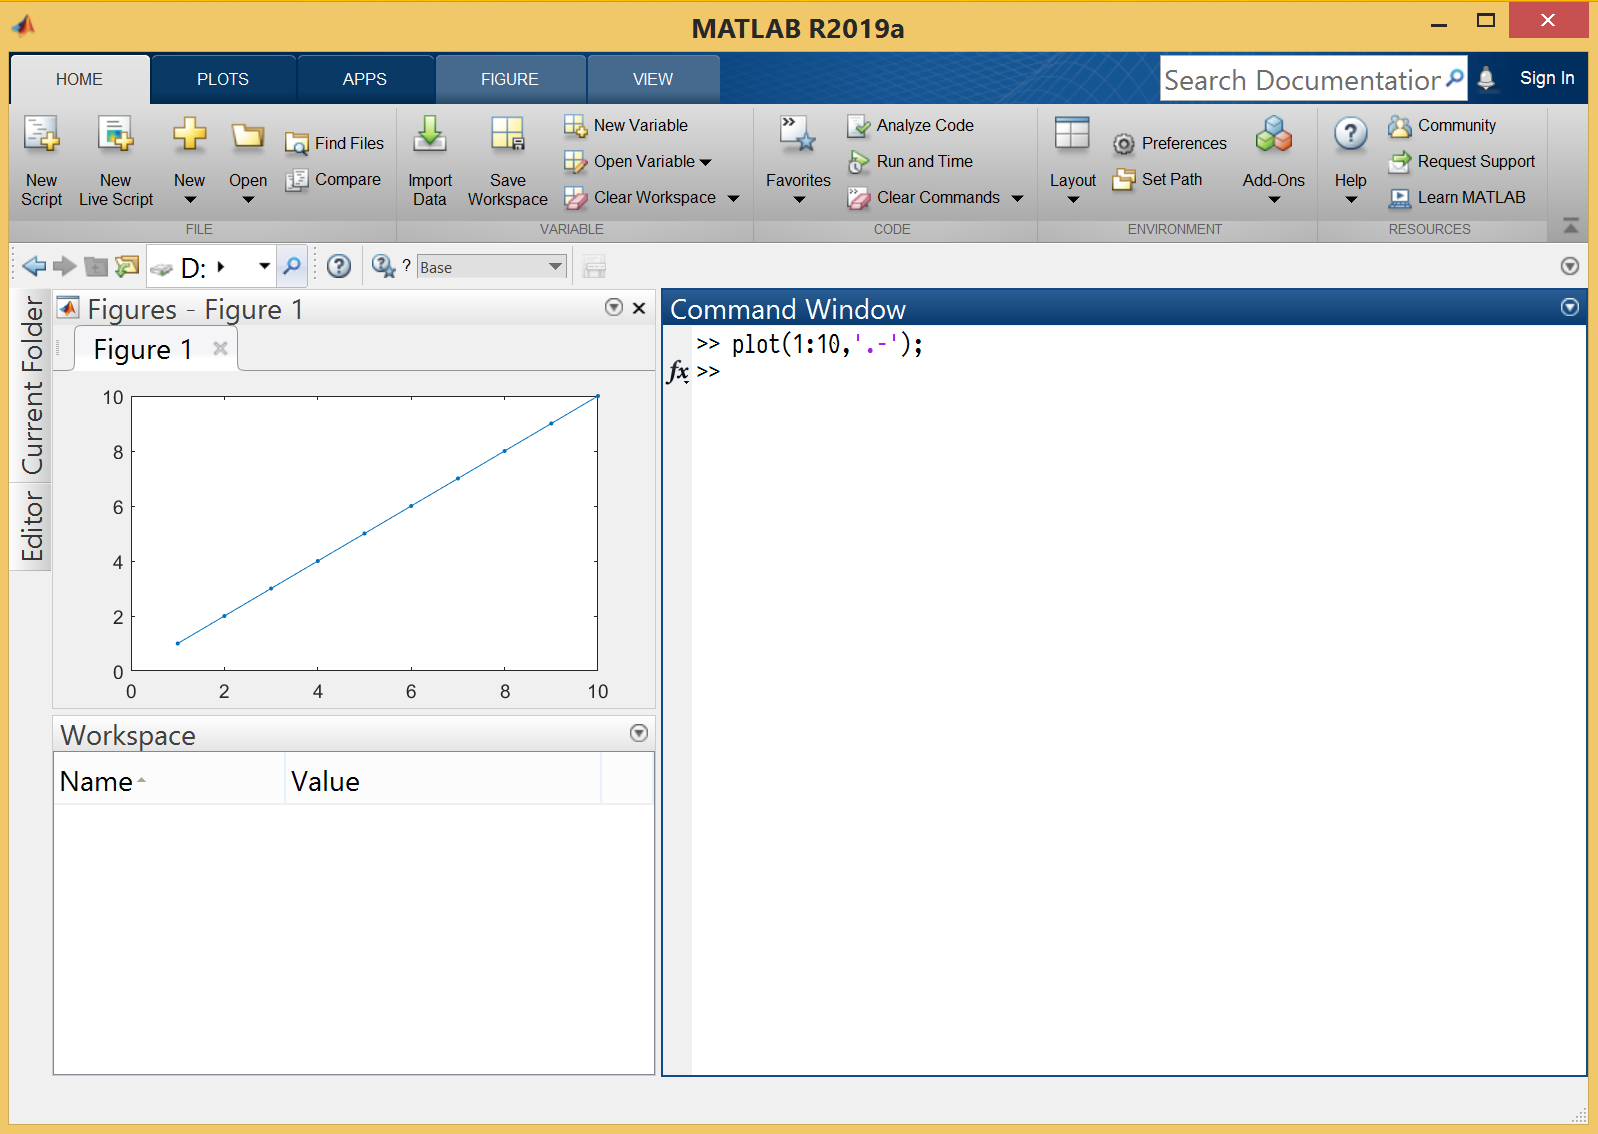 Download Mathworks Matlab R2019a (9.6.0) Windows x64 full license